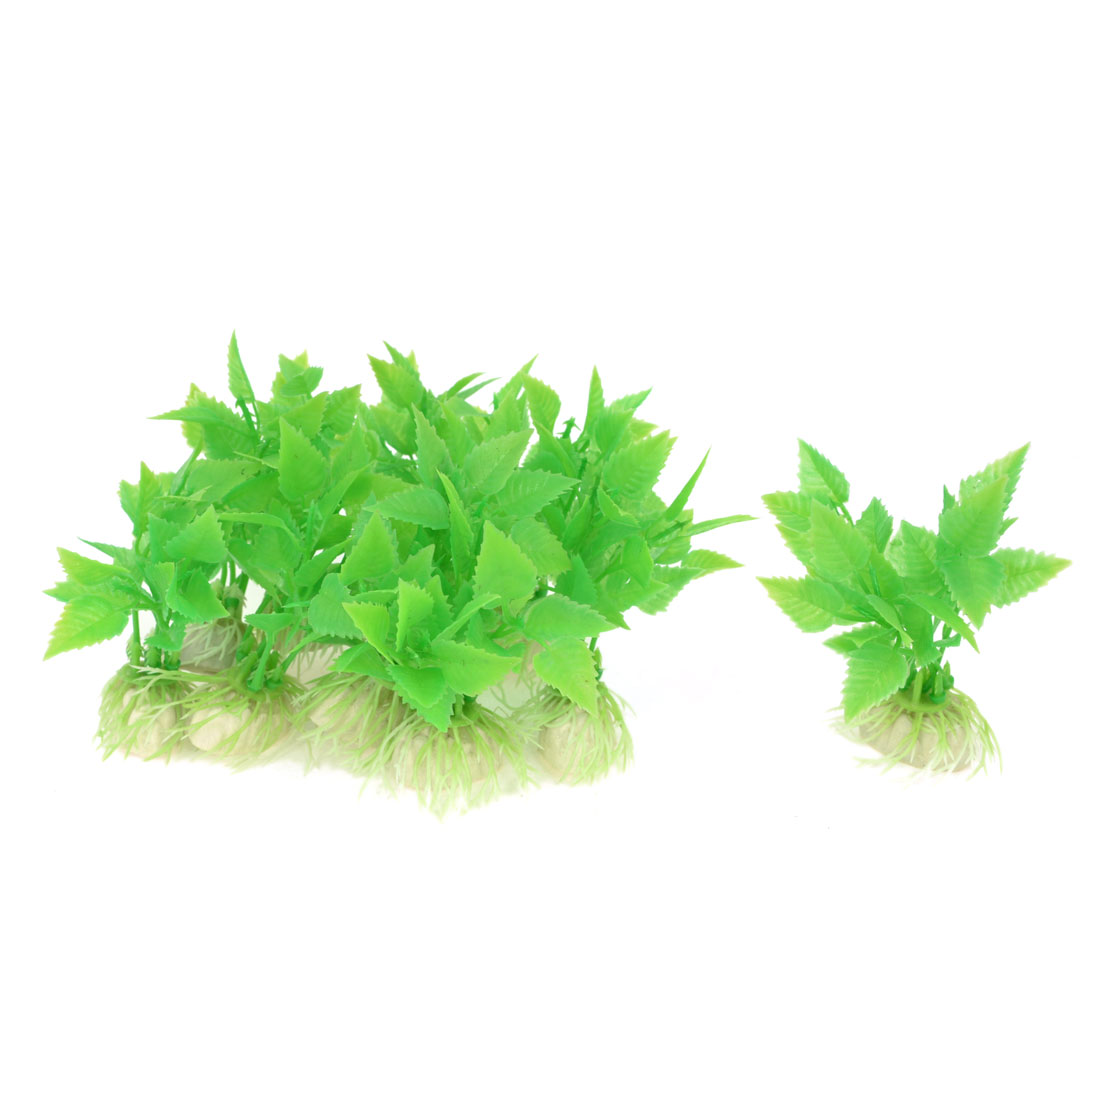 Aquarium Tanks Decor Green Plastic Emulational Aquaric Plant Grass 9cm 10 Pcs